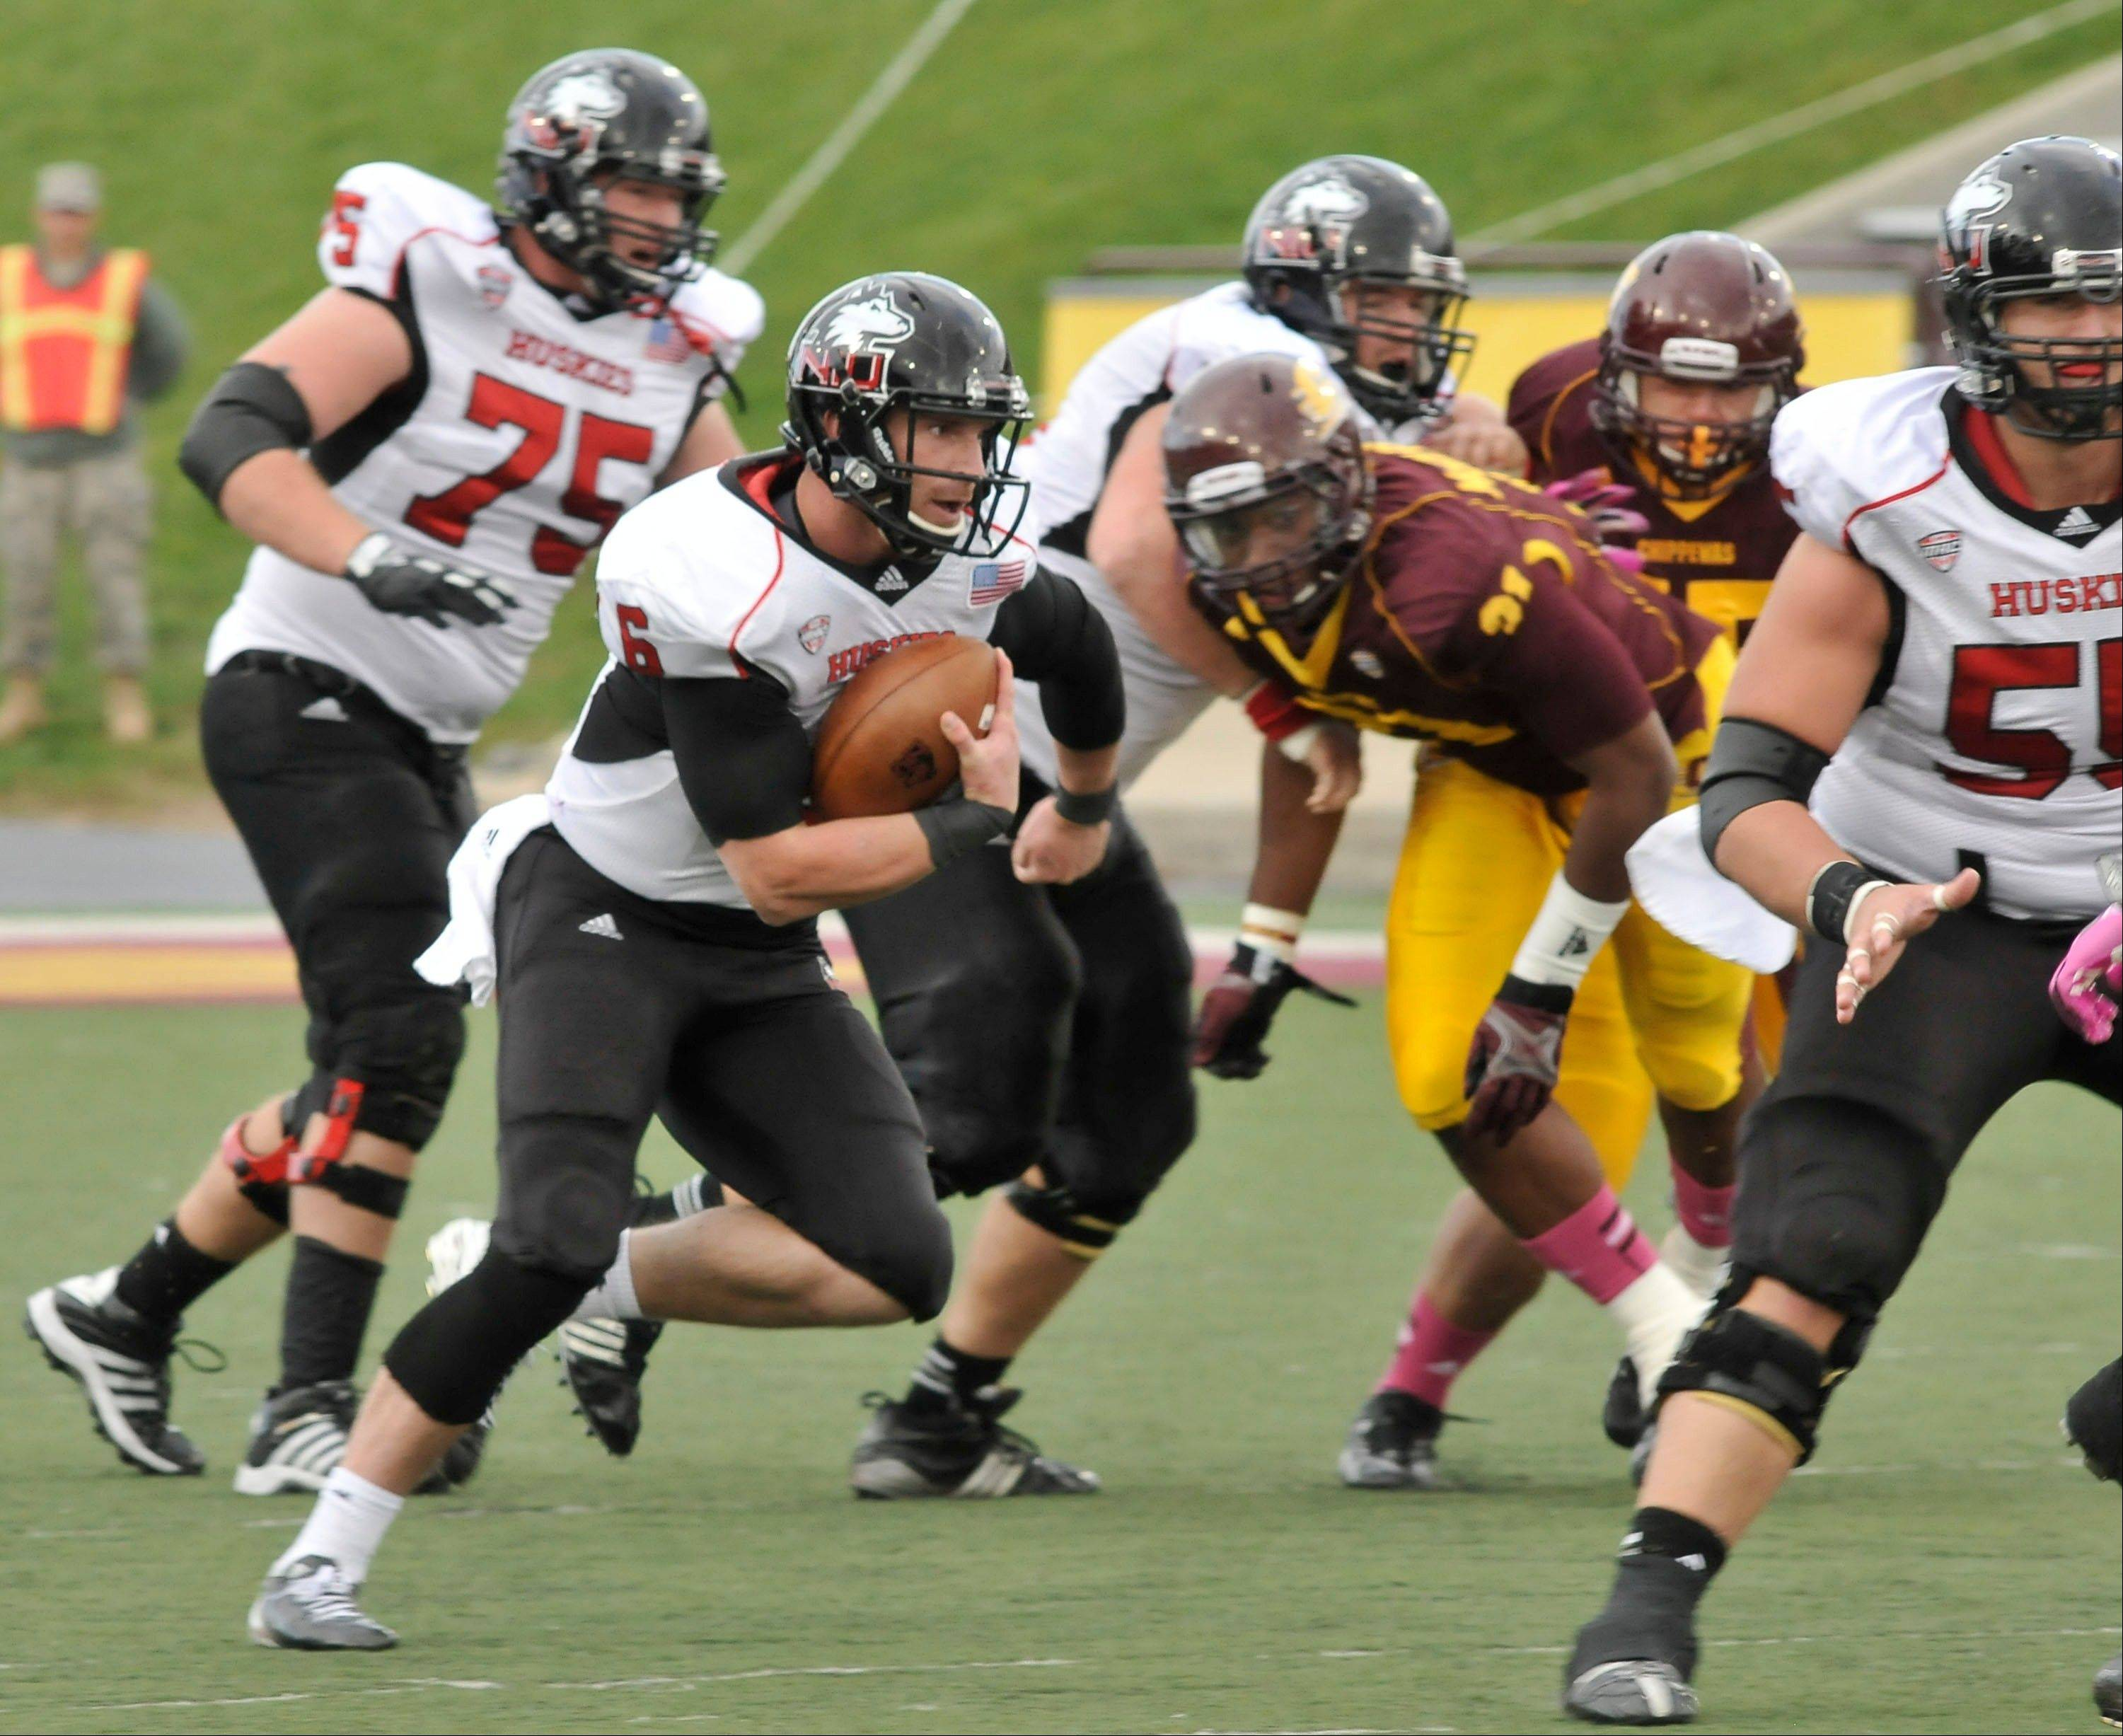 NIU quarterback Joran Lynch rushes for a touchdown during the second quarter of last Saturday's road game against Central Michigan. Lynch scored three times in the Huskies' 38-17 win.